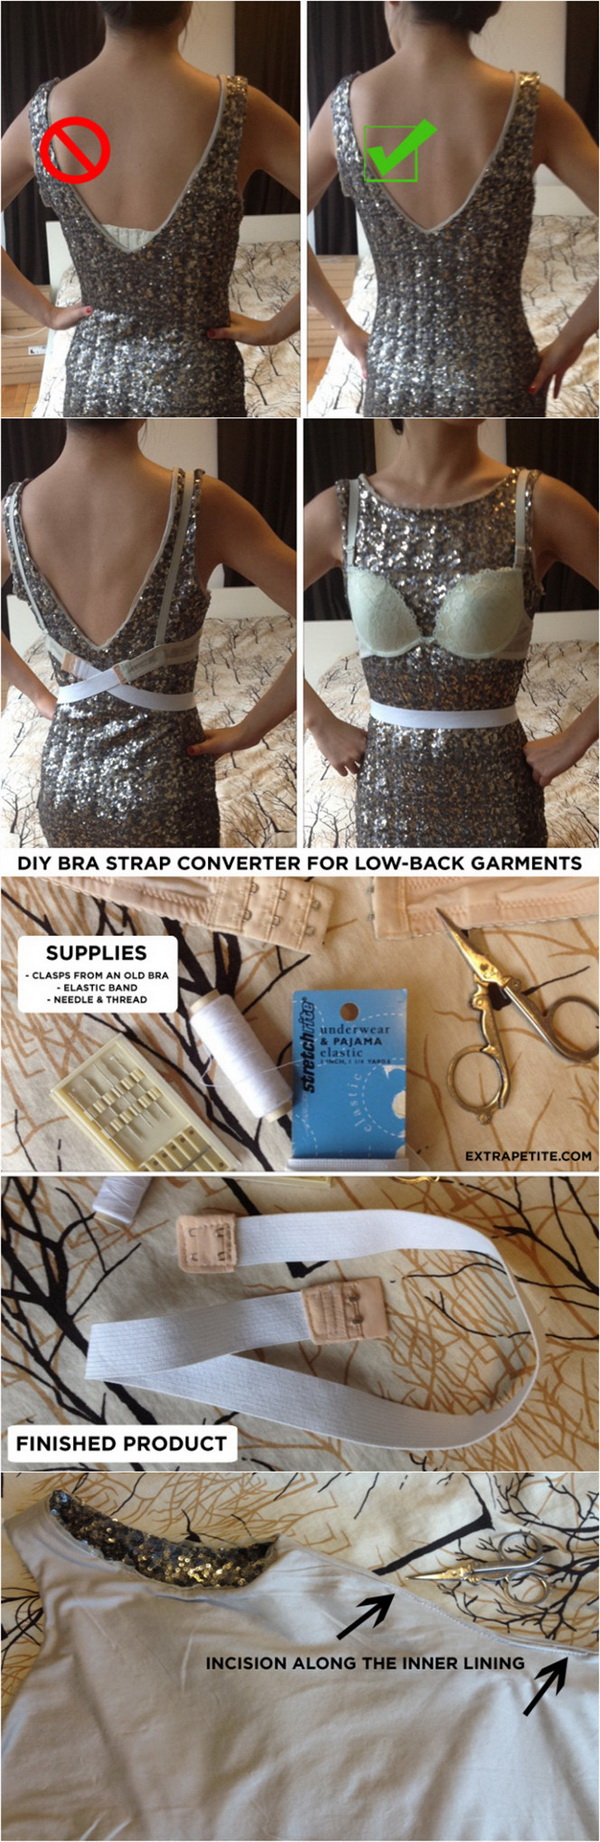 DIY: How To Make A Bra Strap Converter For Low-Back Dresses In 5 Minutes.